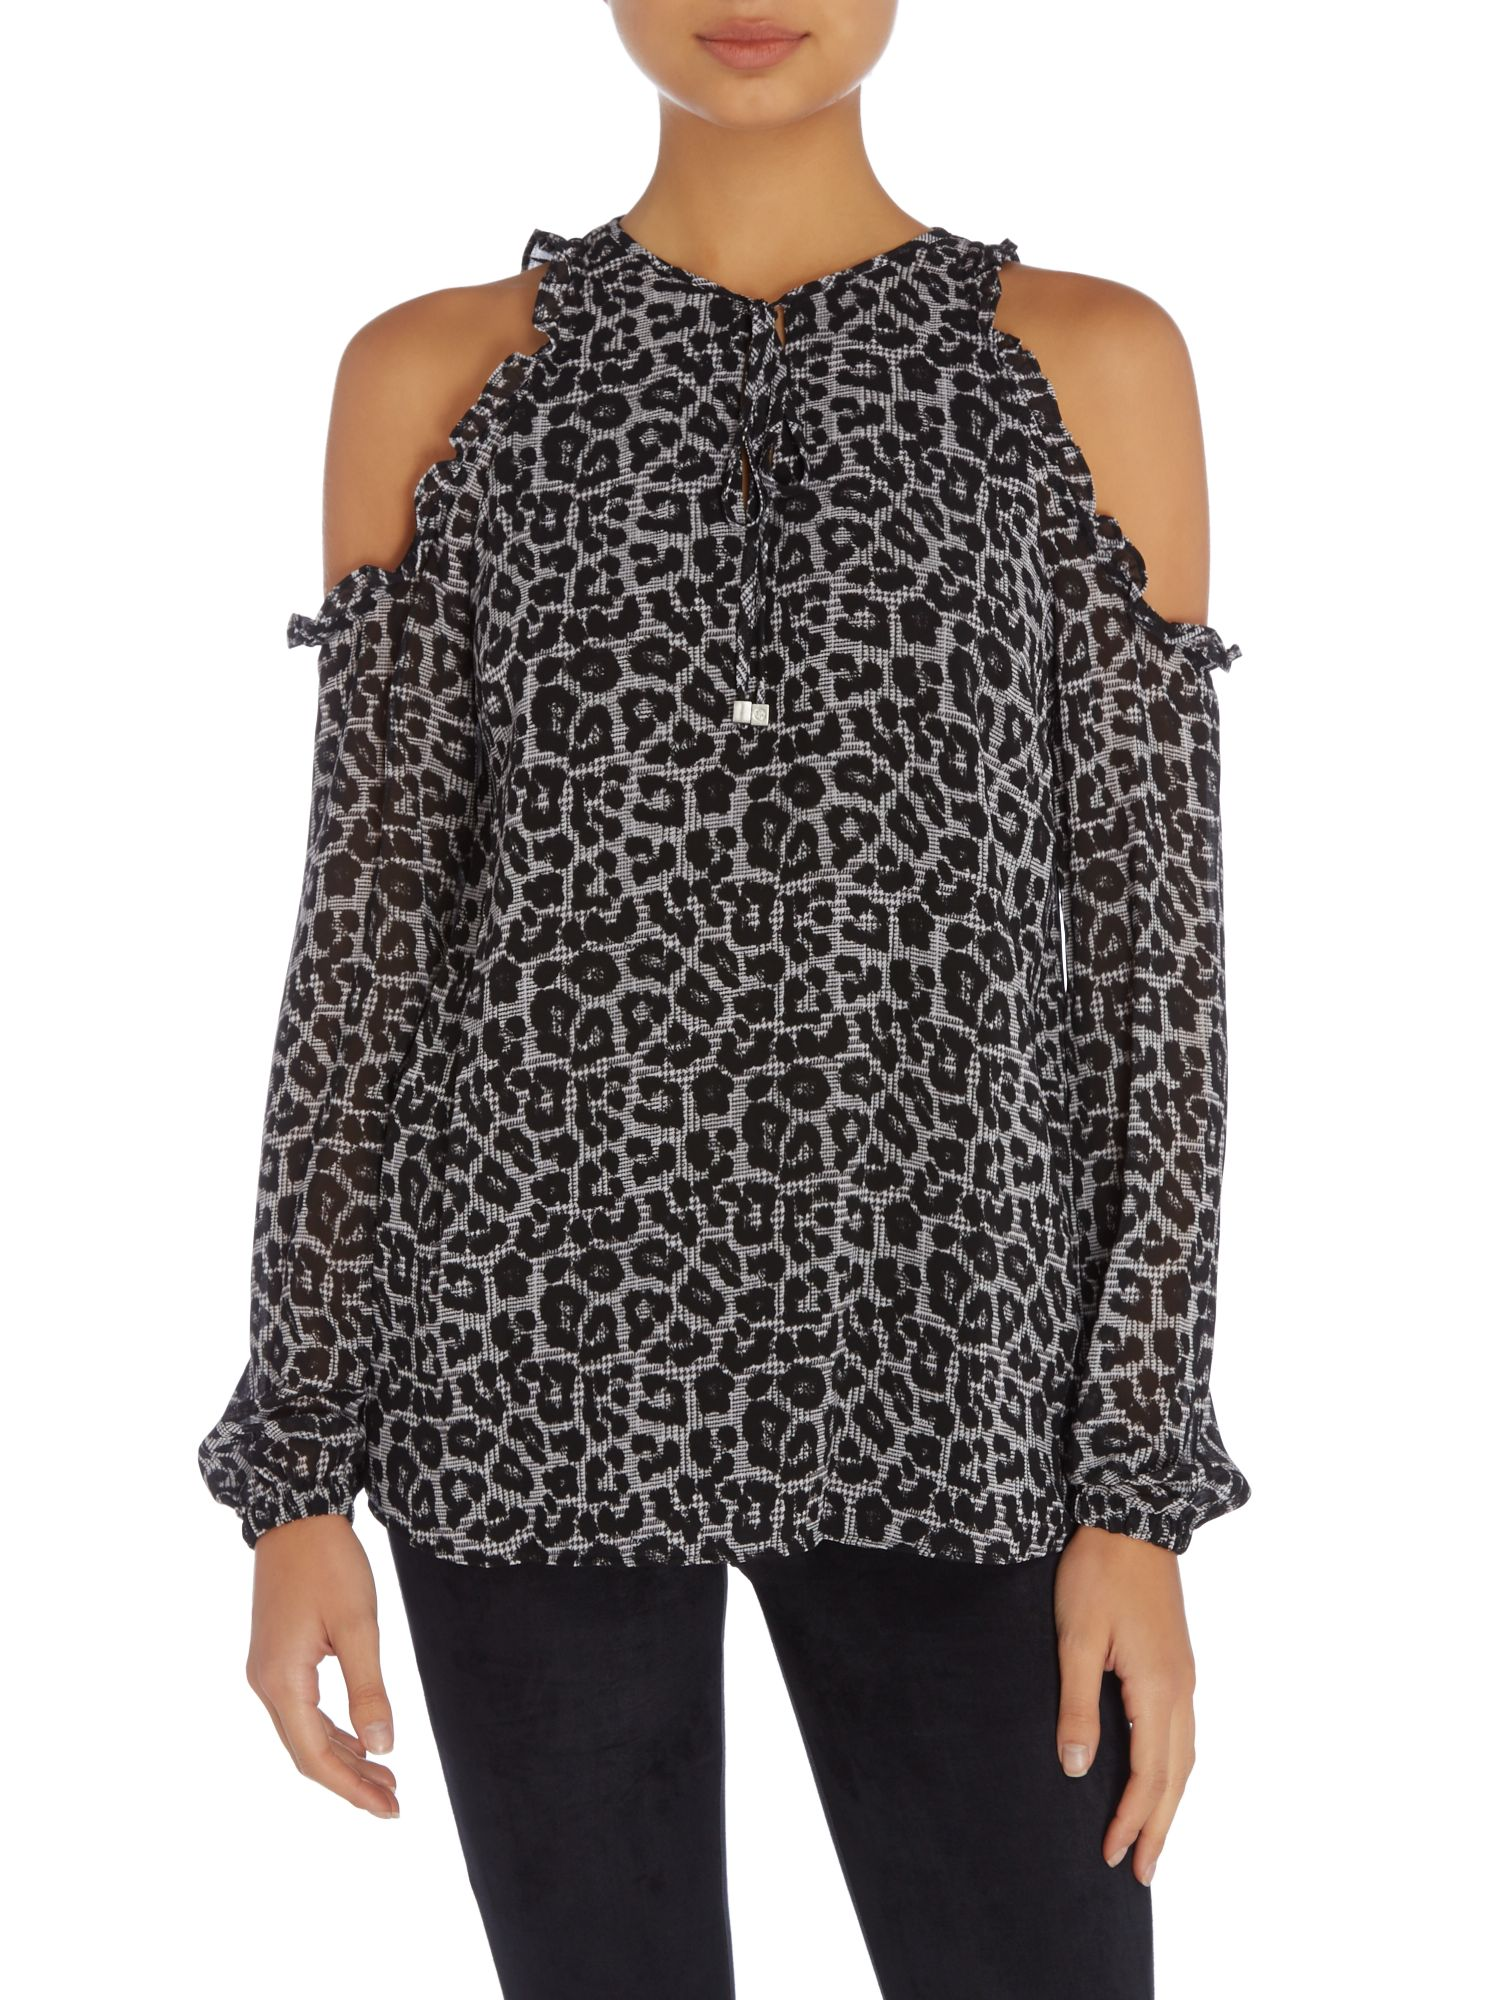 Womens Tops Ladies Tops Shirts Blouses House of Fraser